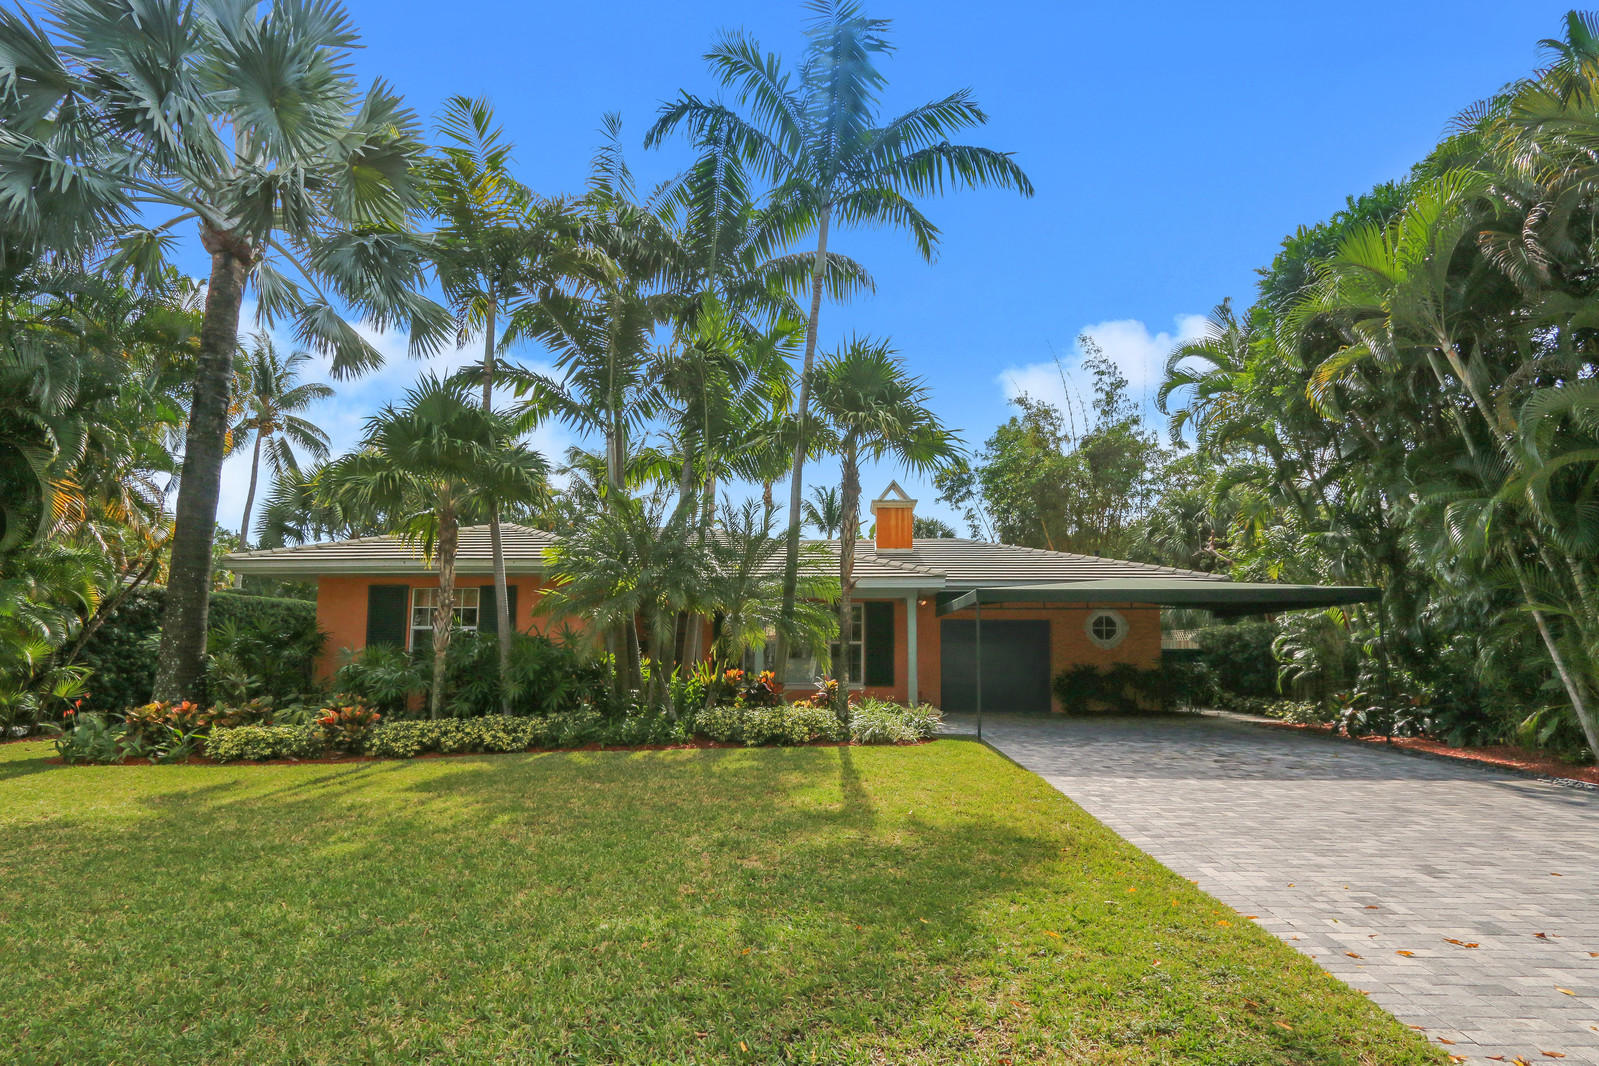 Home for sale in Downtown Delray Beach Delray Beach Florida